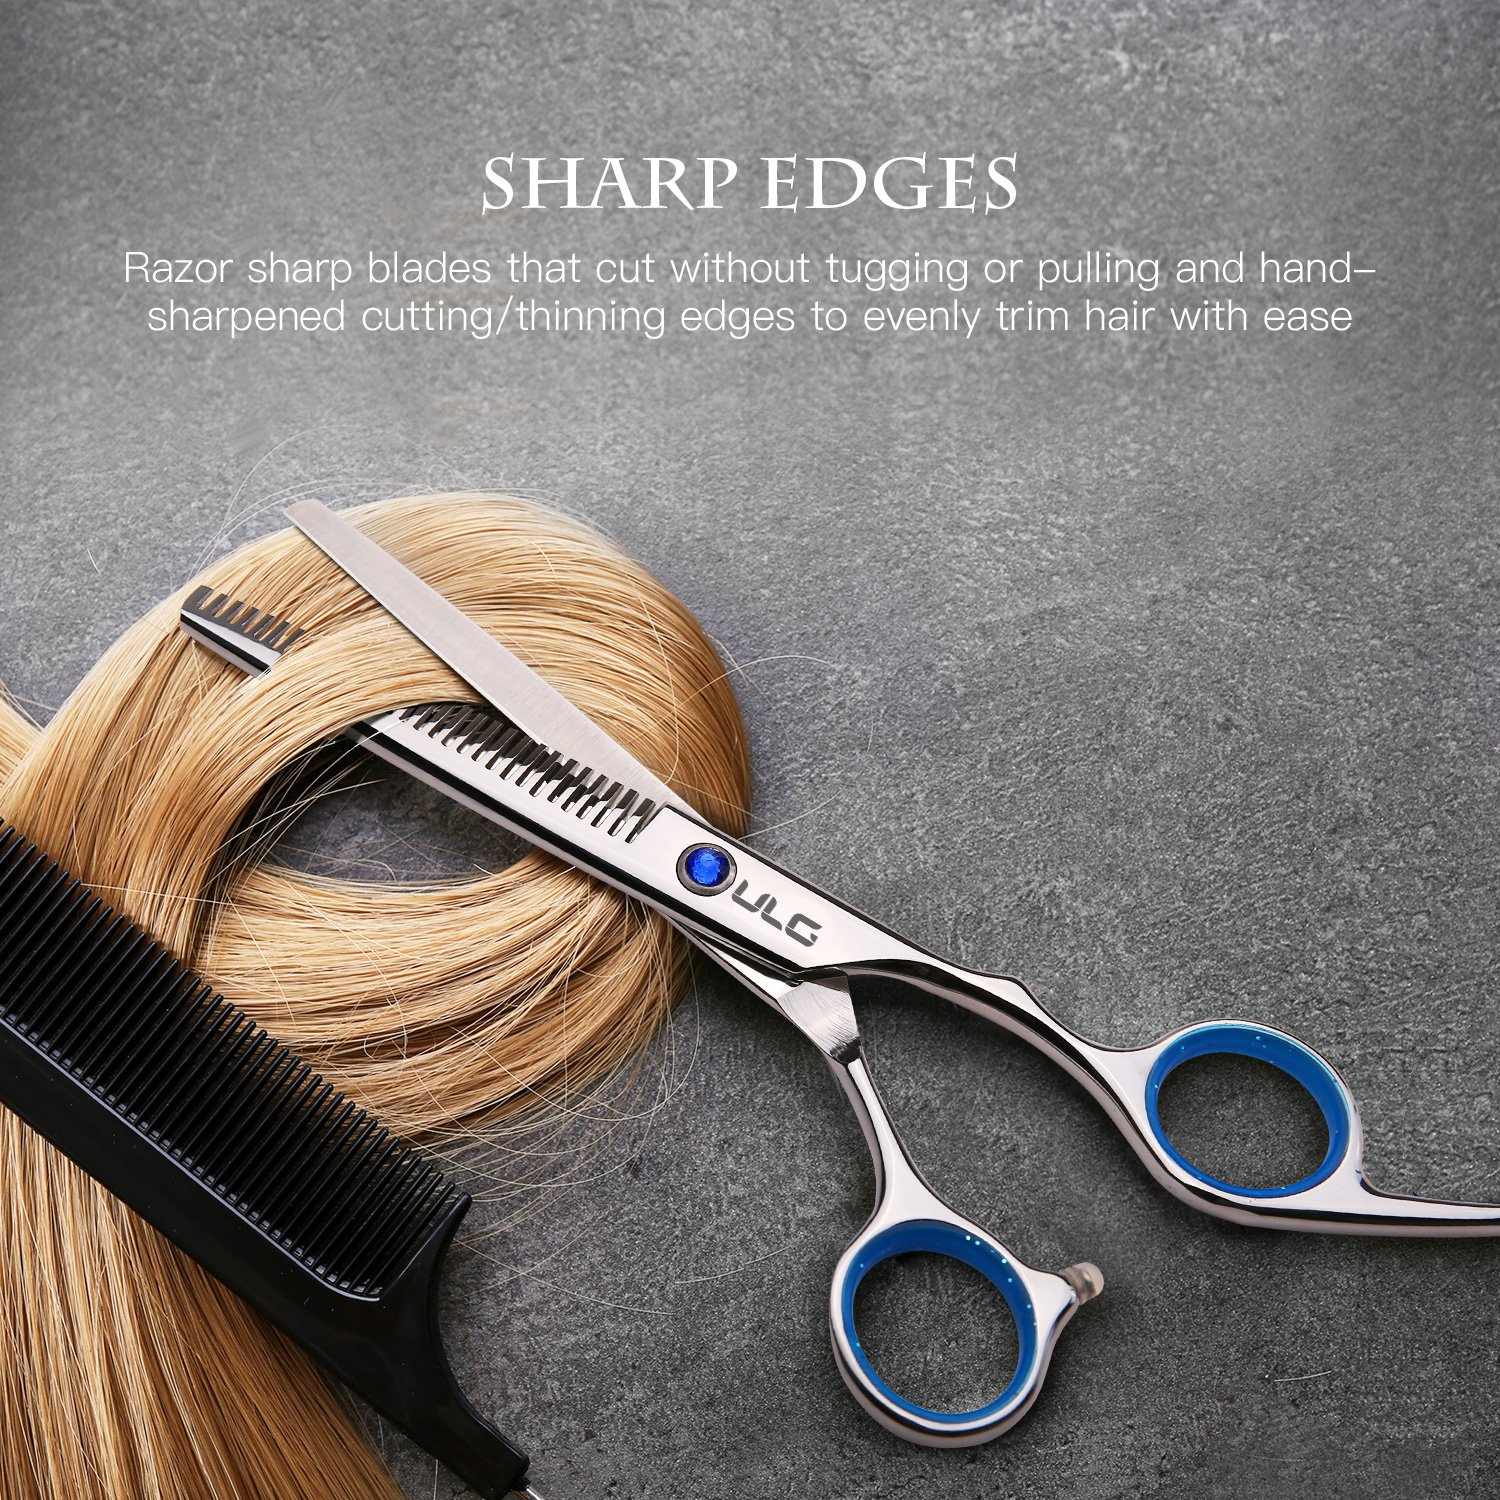 Hair Cutting Scissors Thinning Teeth Shears Set ULG Professional Barber Hairdressing Texturizing Salon Razor Edge Scissor Japanese Stainless Steel 6.5 inch by ULG (Image #5)